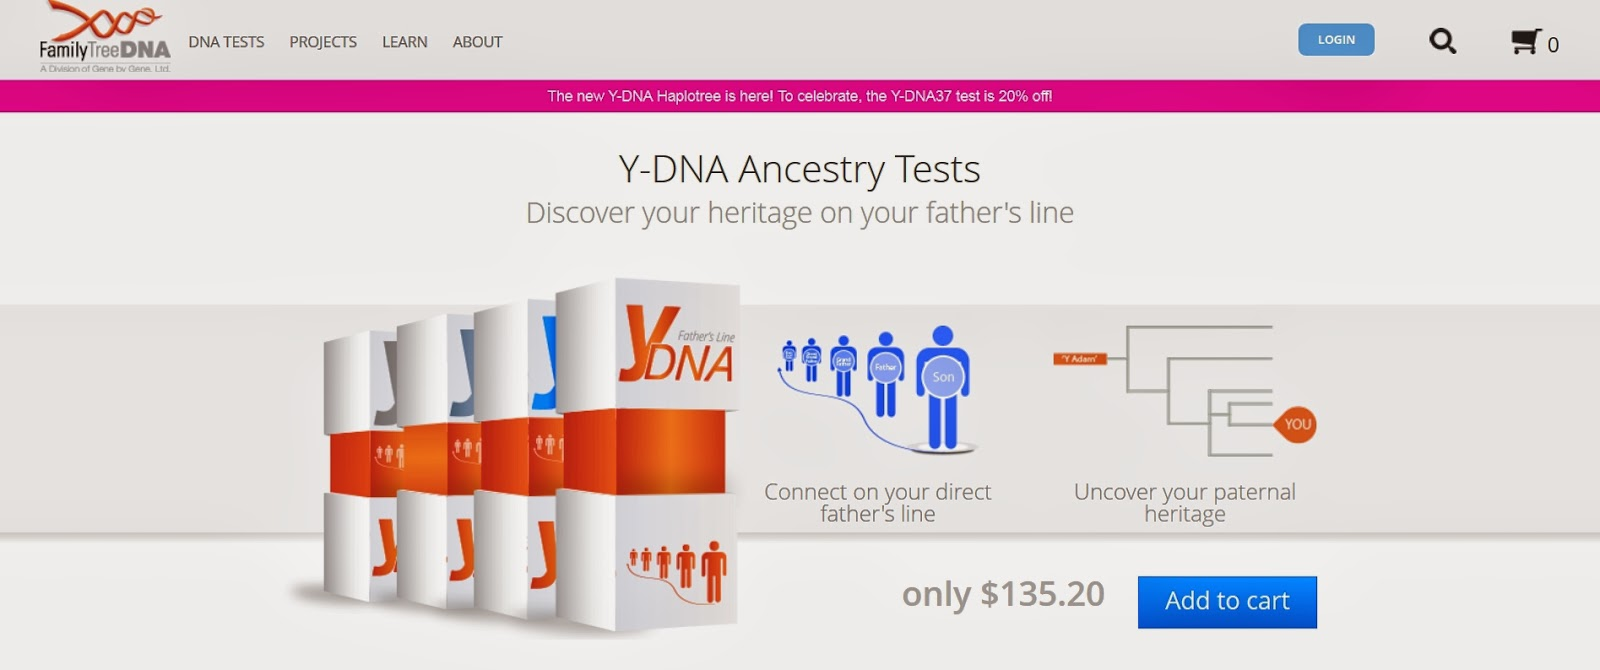 https://www.familytreedna.com/y-dna-compare.aspx?utm_source=SendGrid&utm_medium=Email&utm_content=YDNA37&utm_campaign=DNA%20Day